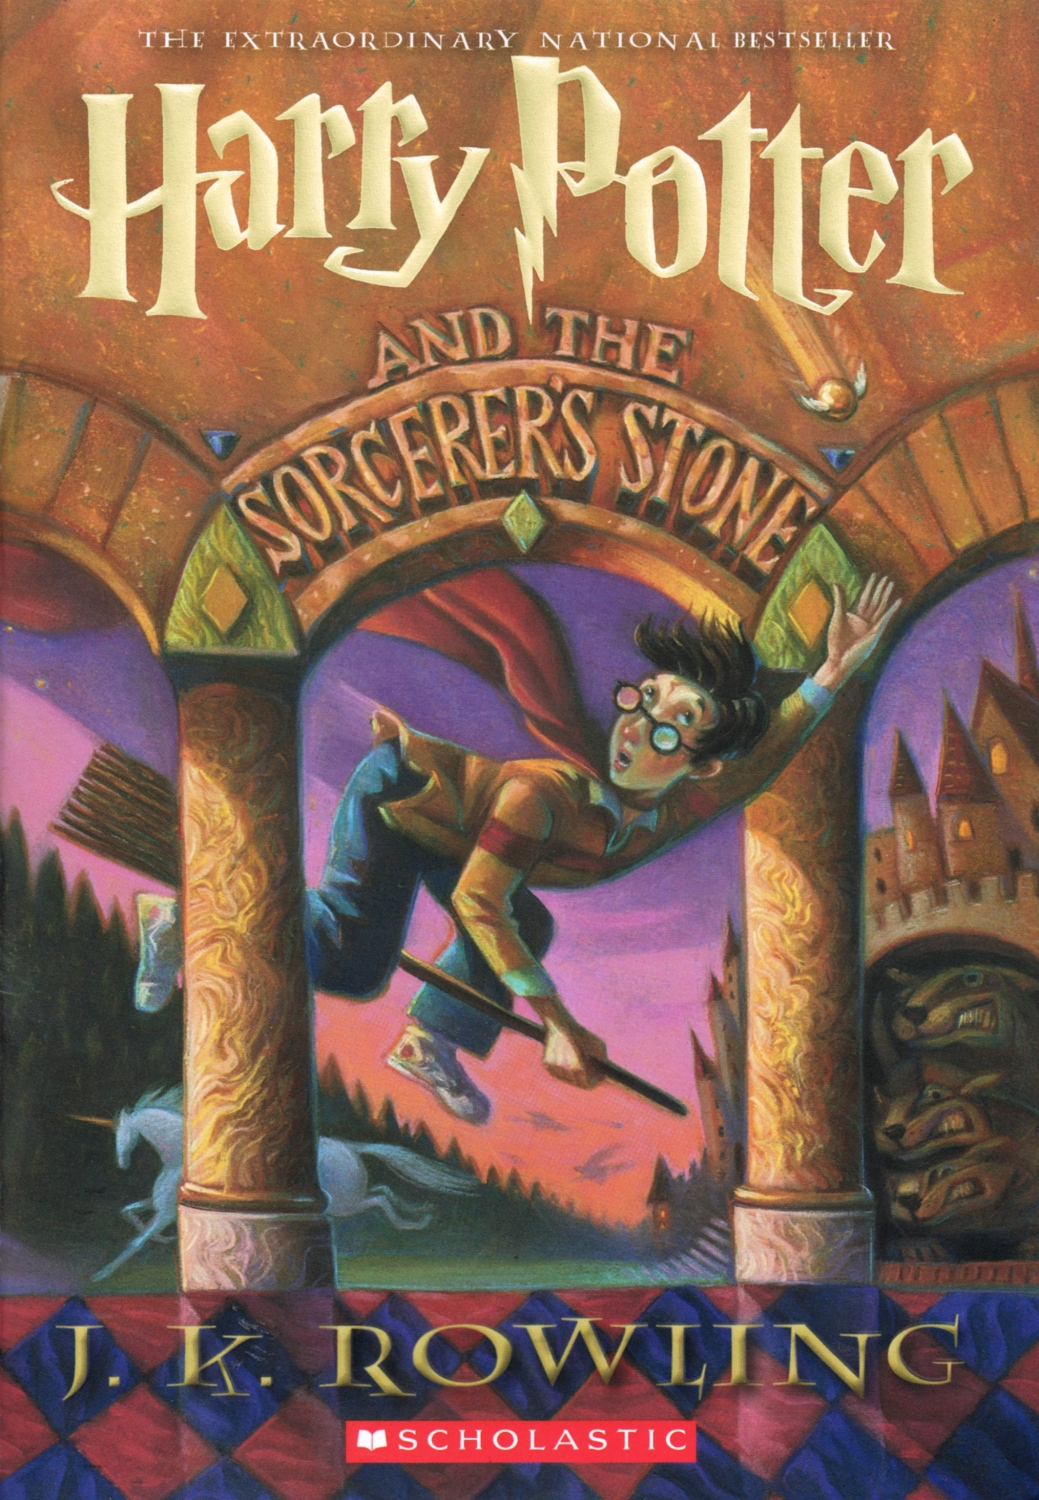 Harry Potter and the Sorcerer's Stone | Philosopher's Stone | JK Rowling (Food Reference List)